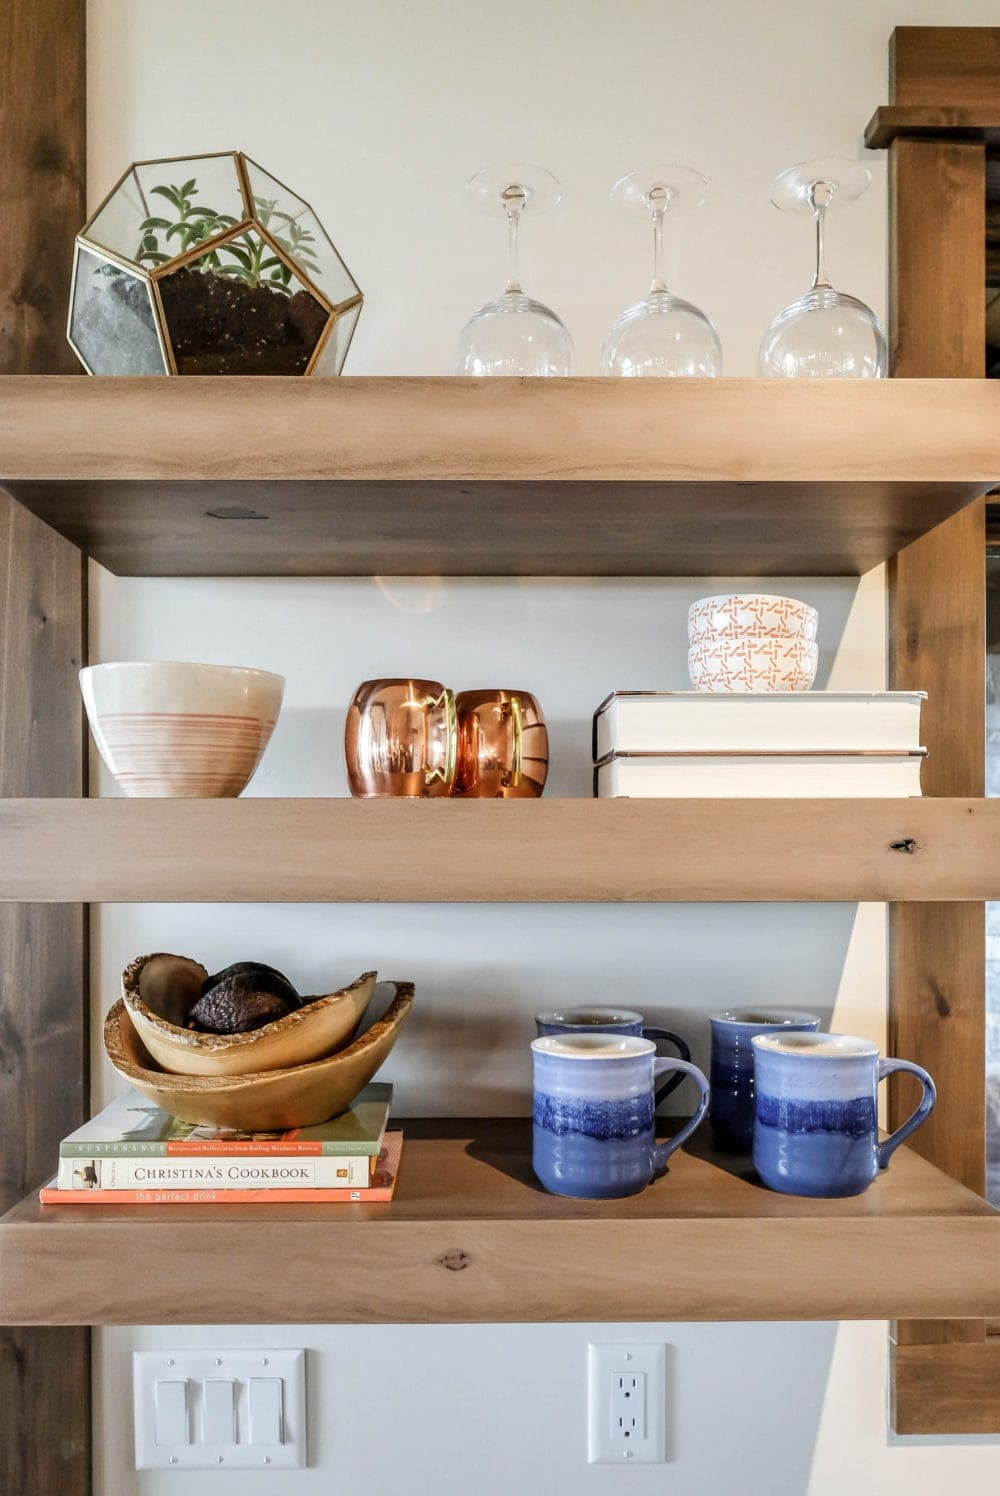 kitchen shelves styled with wine glasses, a bowl, books, and mugs